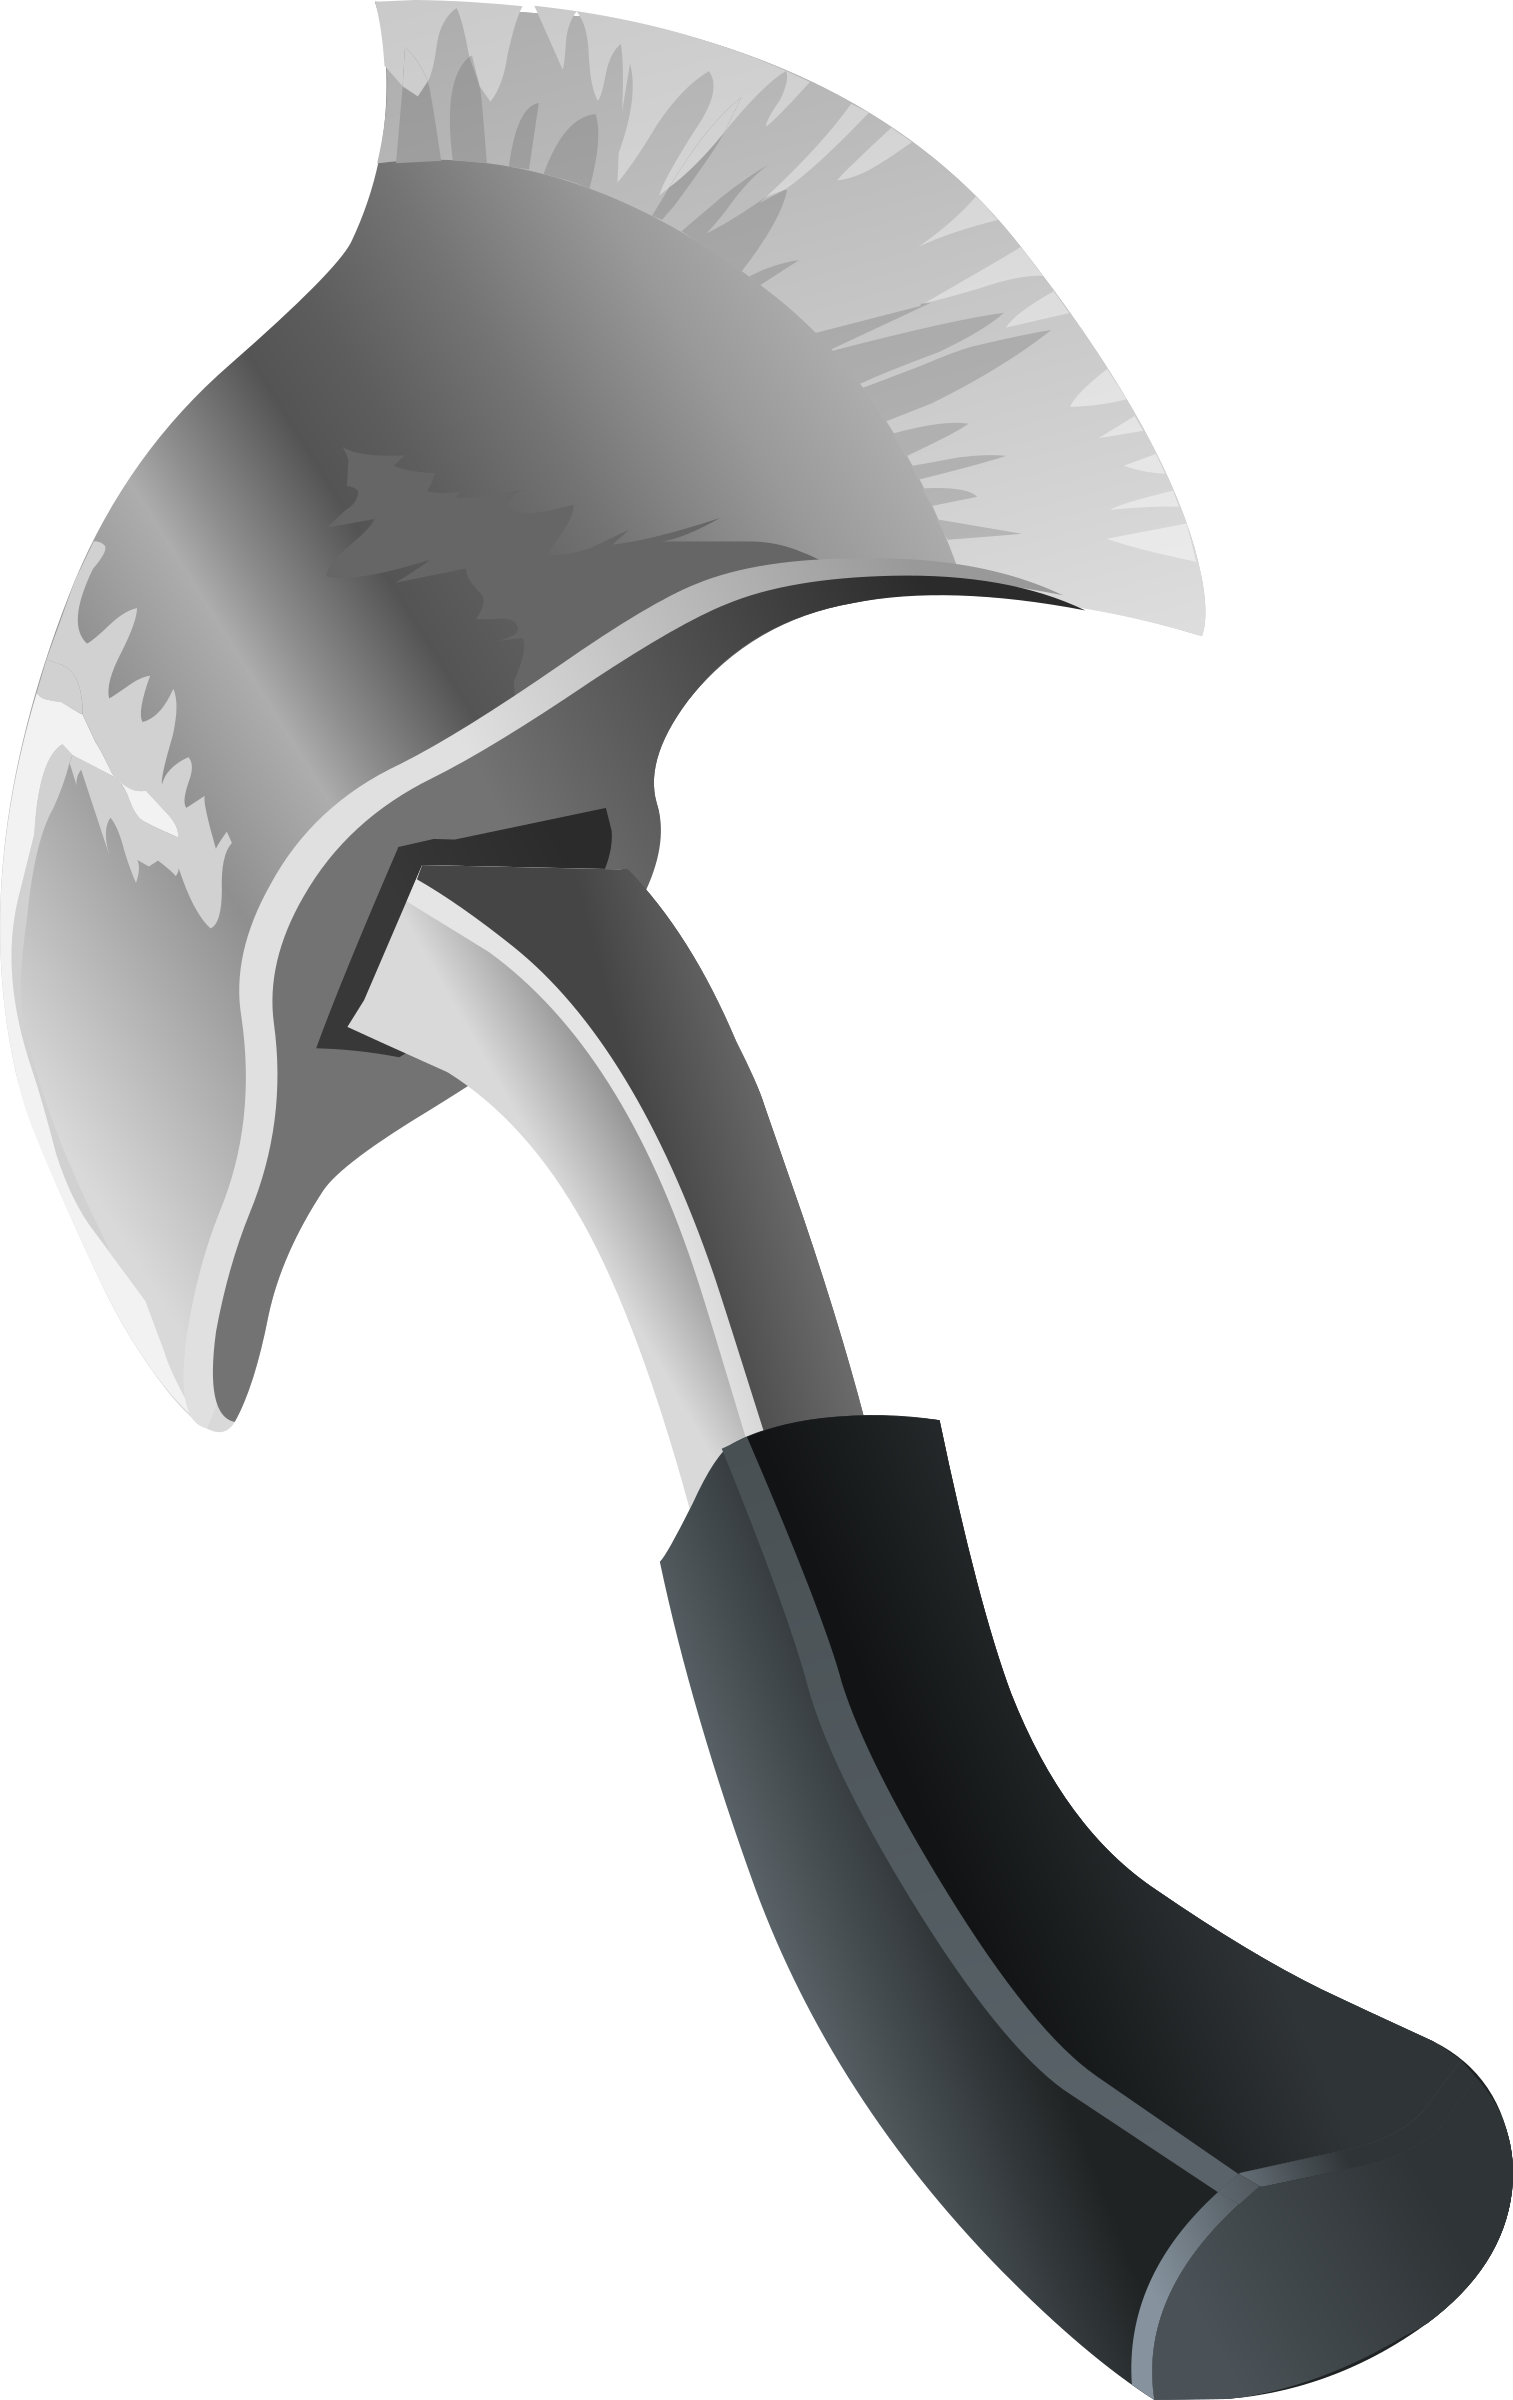 Tools Class Axe by glitch